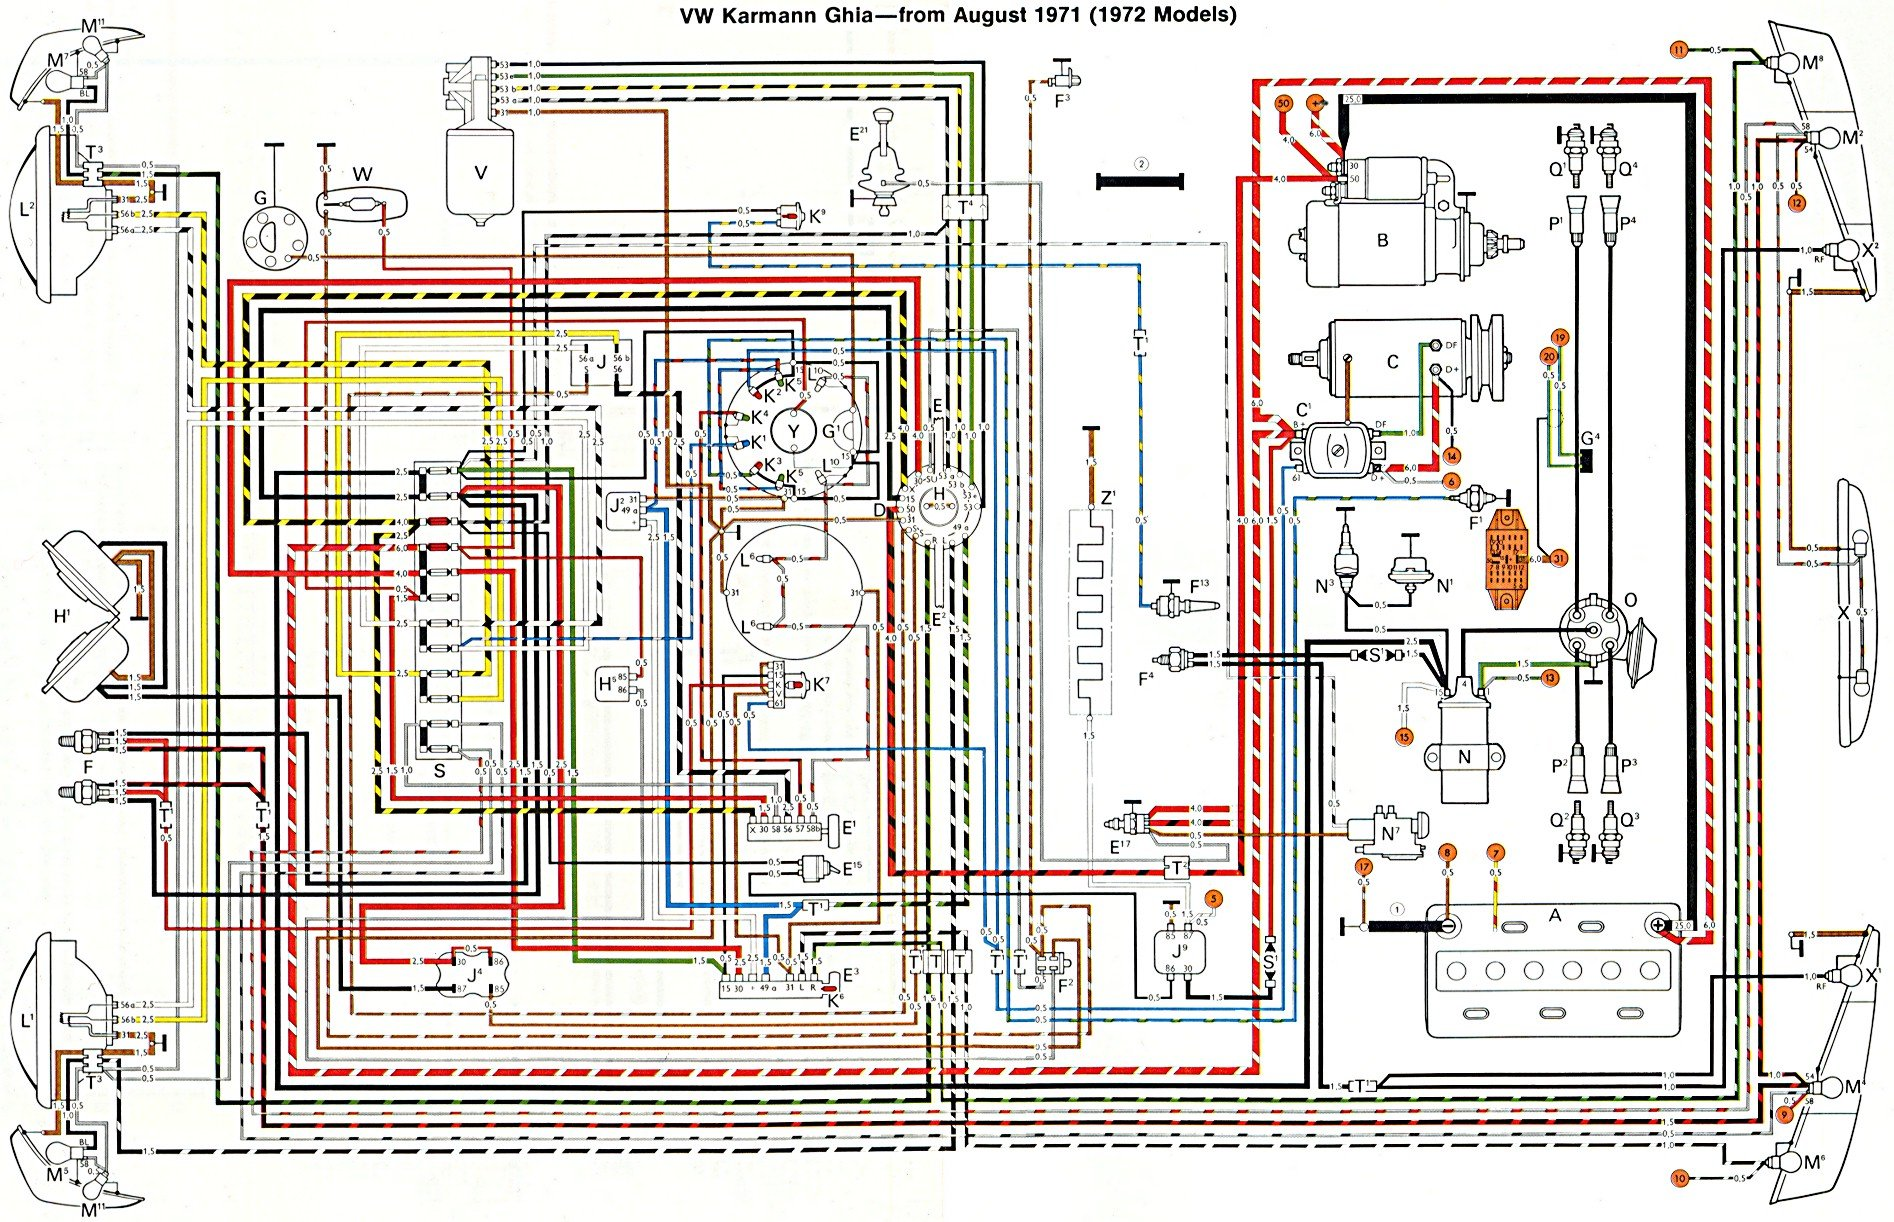 72ghia 1971 karmann ghia wiring diagram karmann ghia wiring harness 1971 porsche 911 wiring diagram at fashall.co